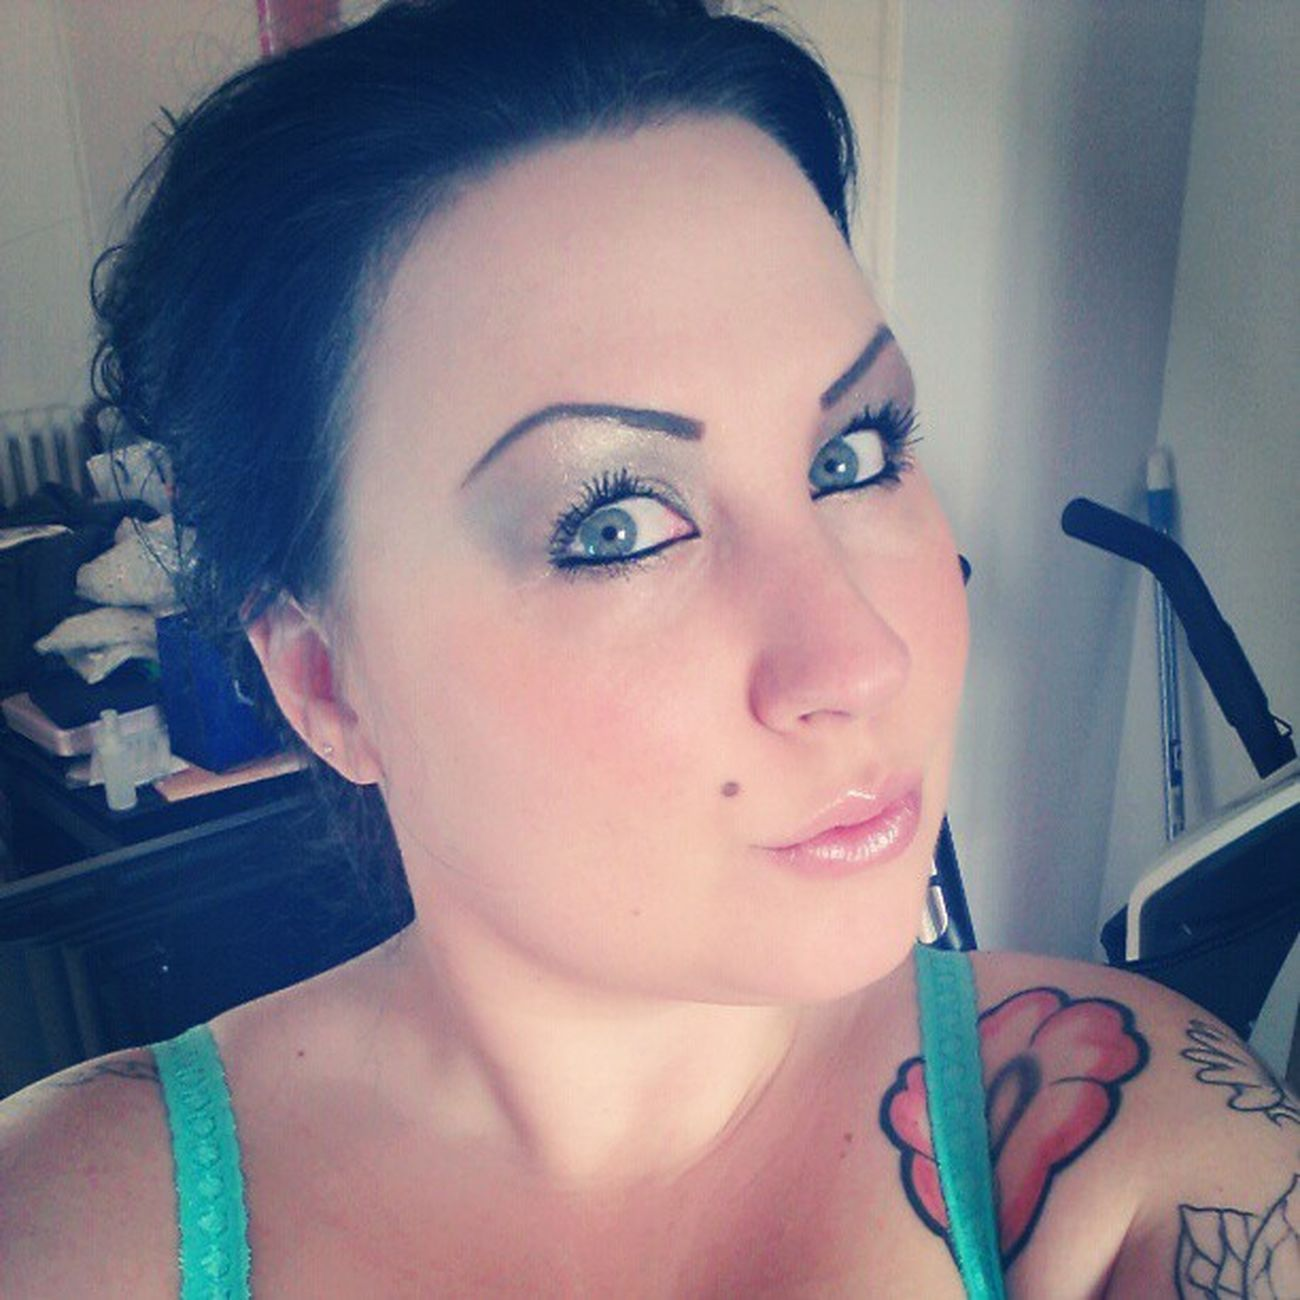 Muotd Makeupoftheday Urbandecay Ud toofacedmakeup toofaced glitter silver blueeyes girlwithtattoos